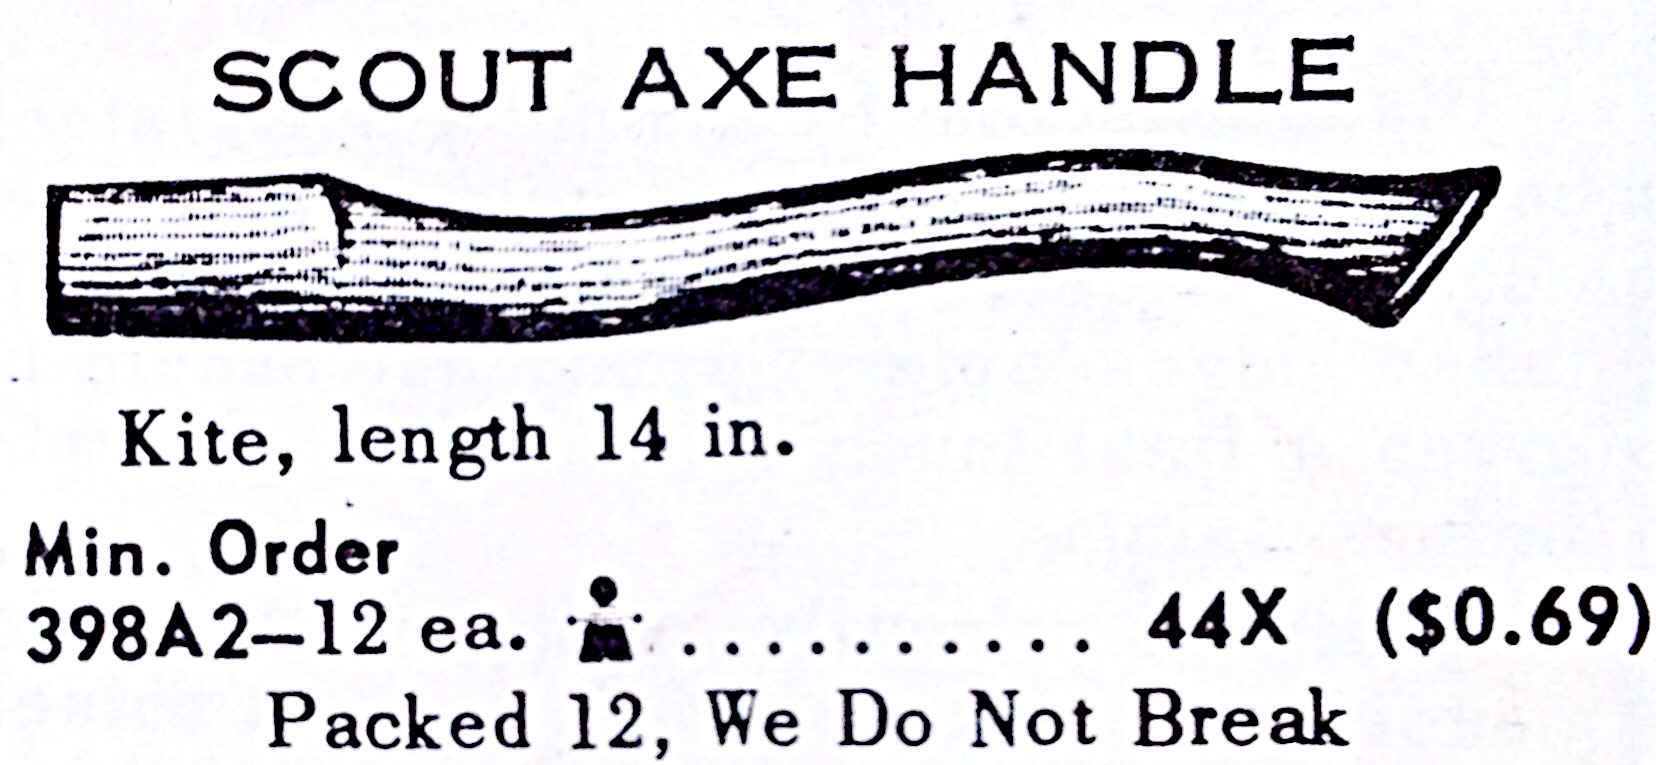 Scout Axe Handle « Hardware Illustrated